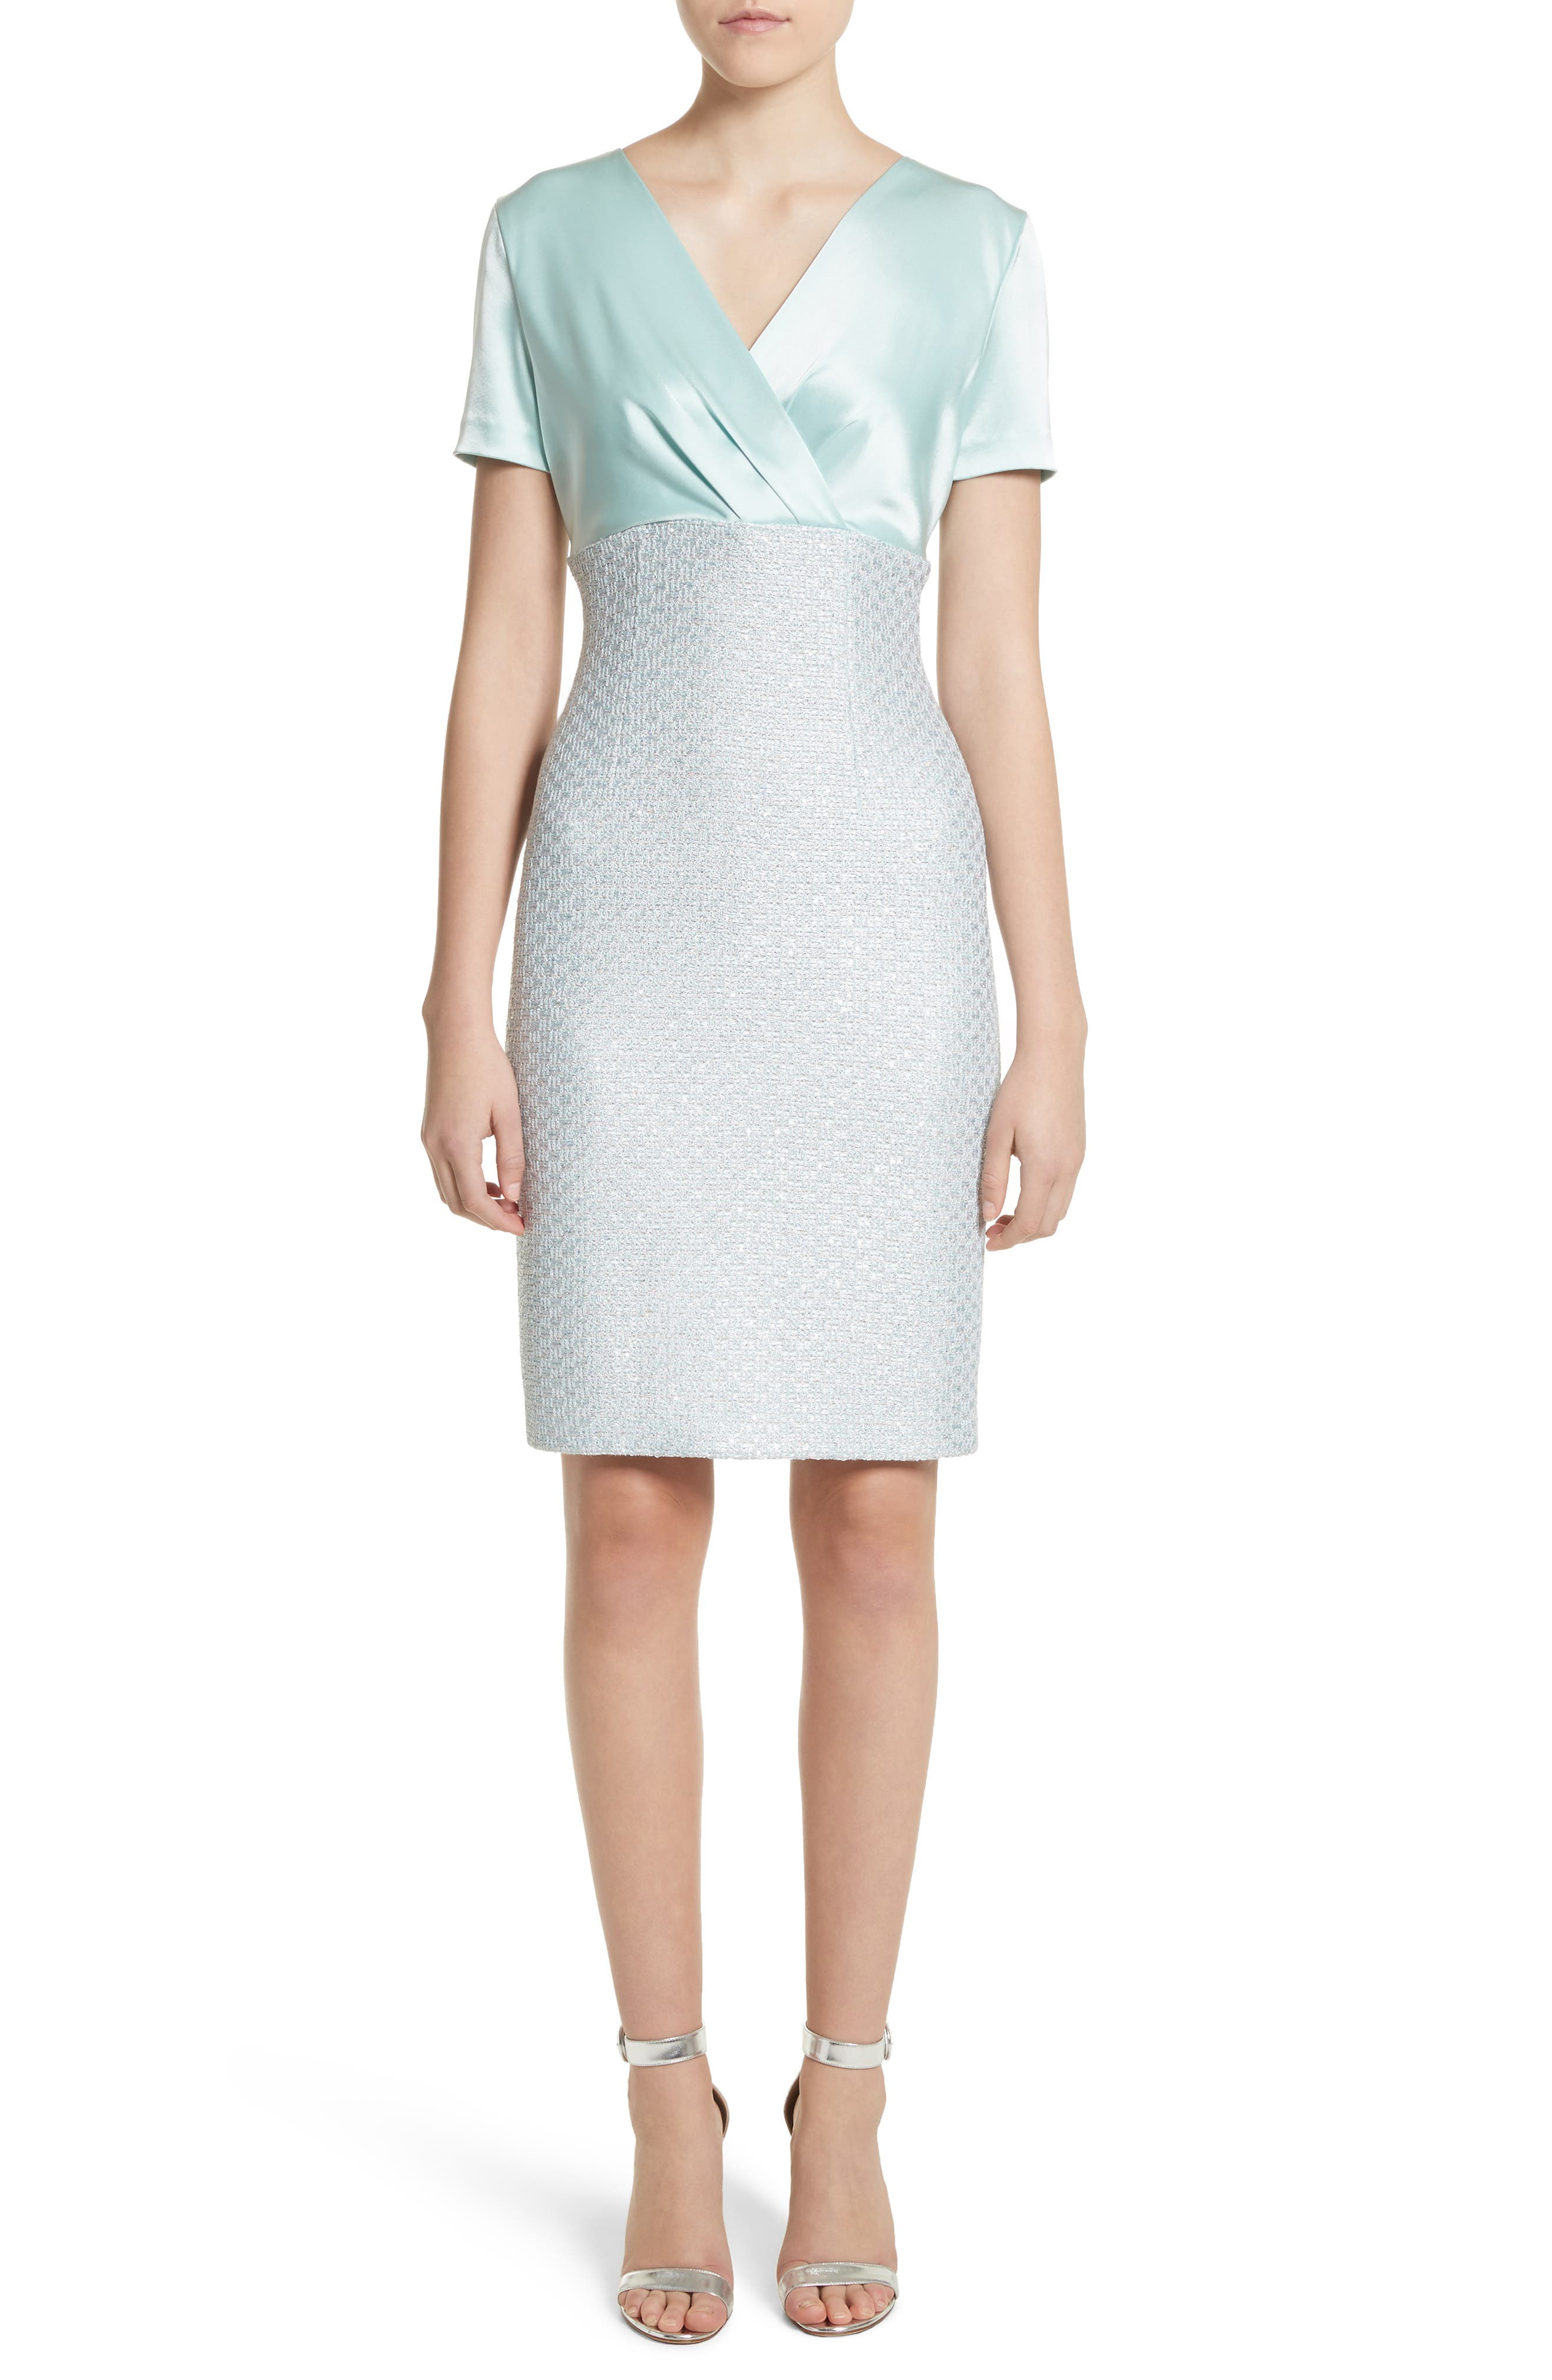 Hansh Satin & Knit Sheath Dress,                             Main thumbnail 1, color,                             Mint